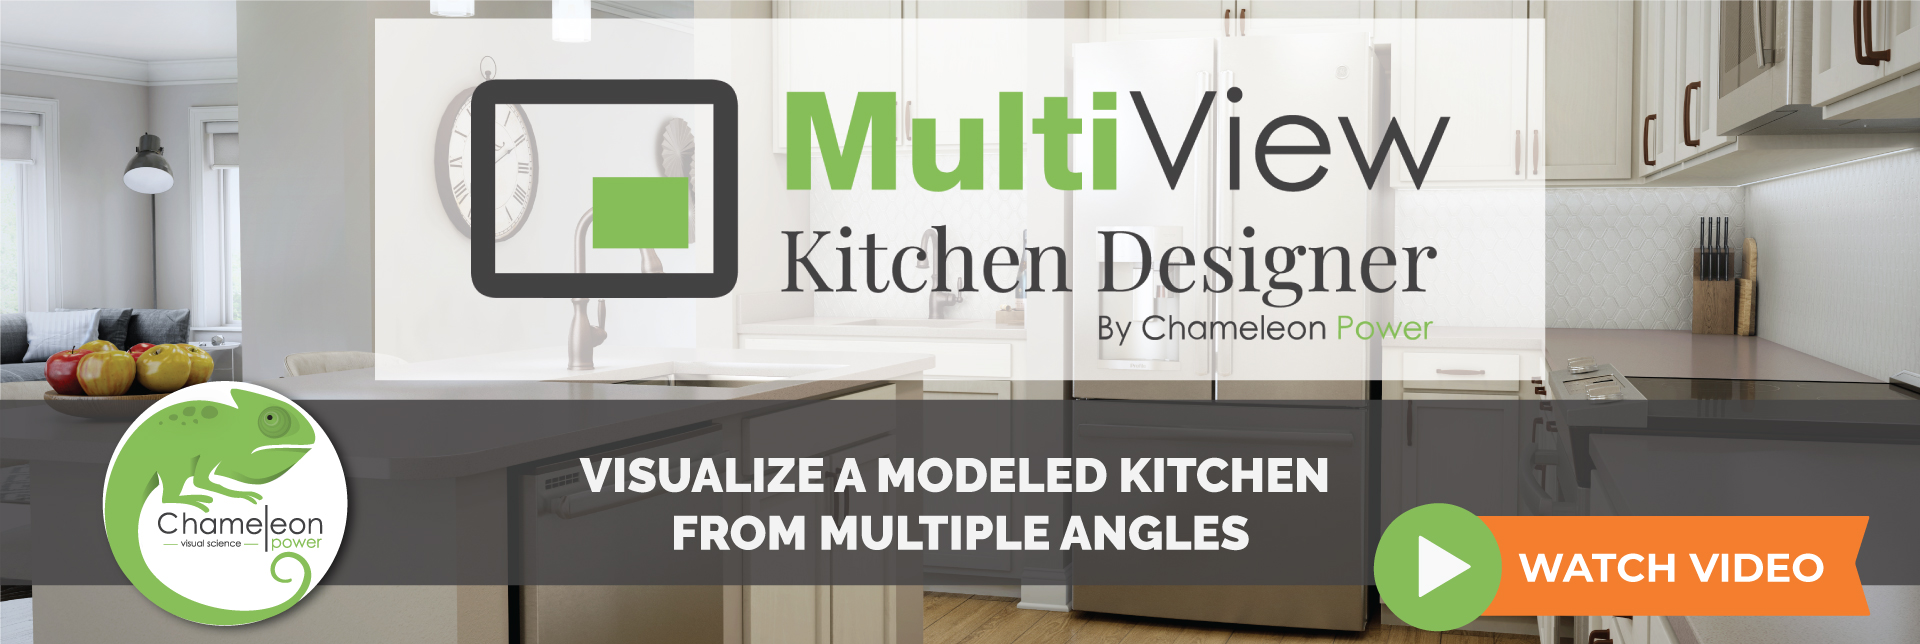 MultiView Visualizer